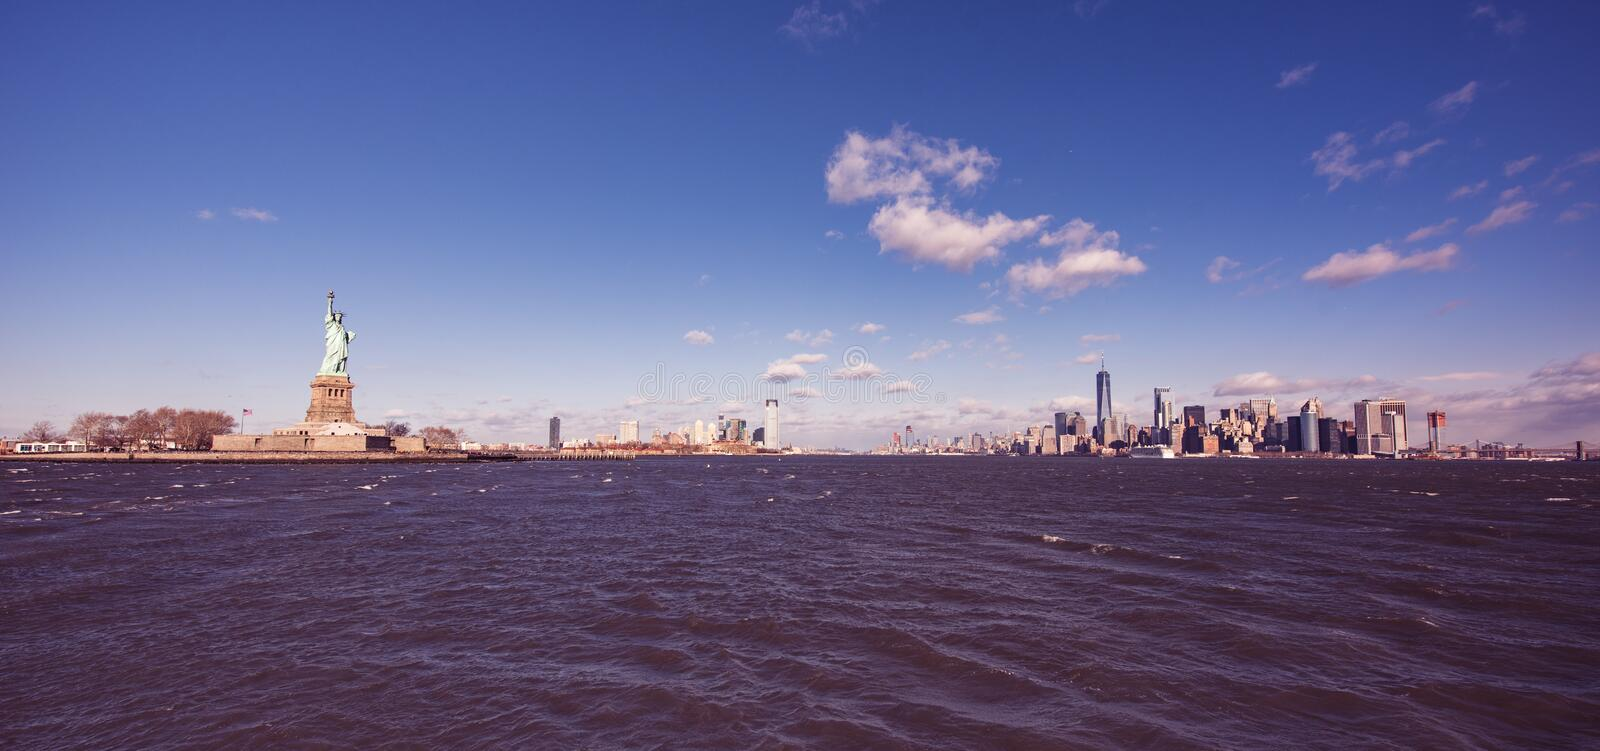 Panorama View of Statue of Liberty at New York City with Manhattan Skyline over Hudson River - USA royalty free stock images